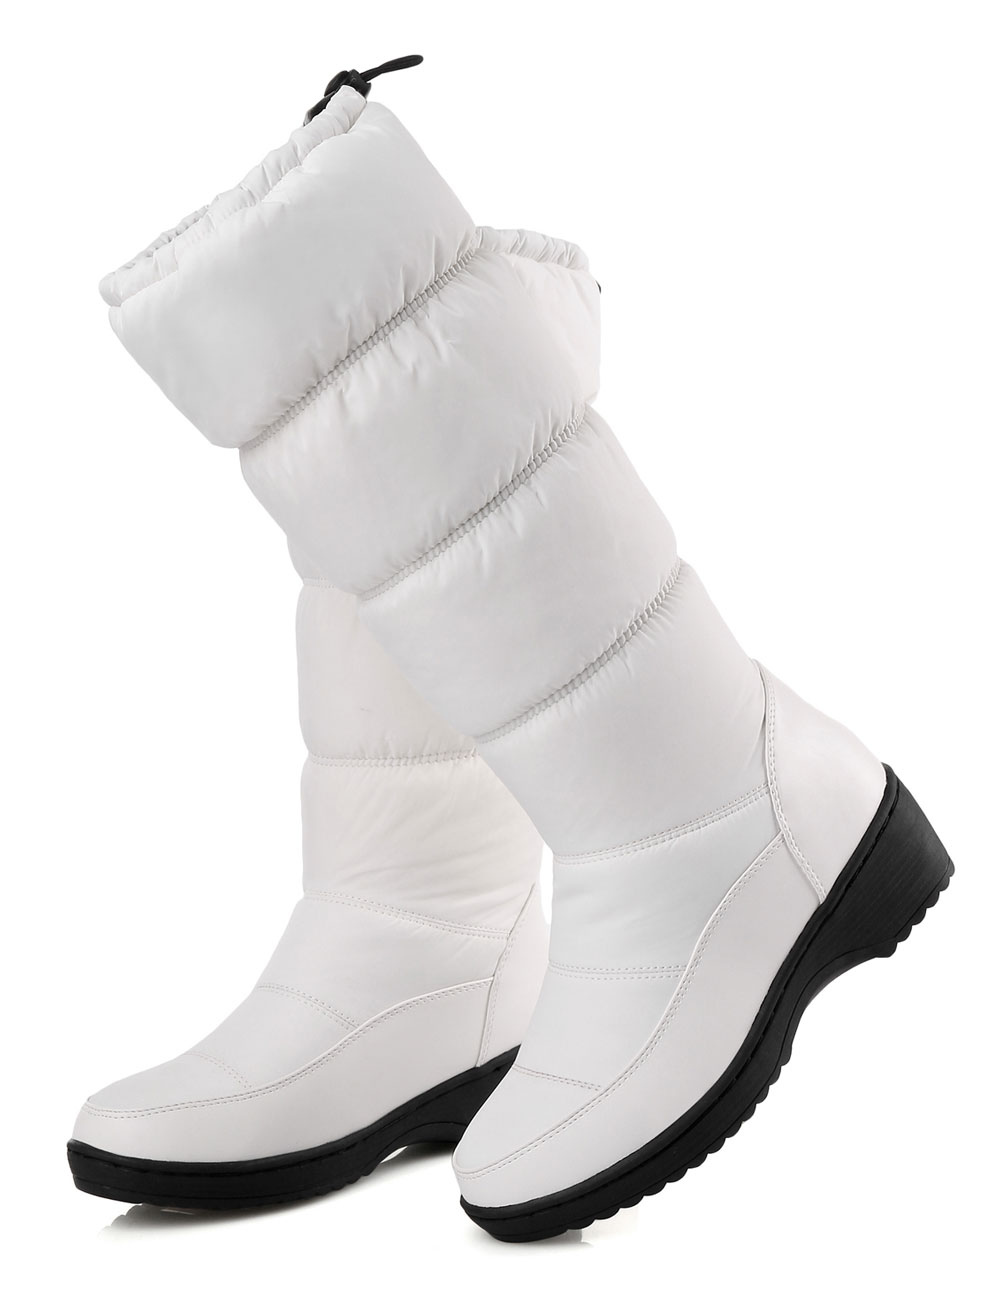 White Snow Boots Women Boots Round Toe Slip On Winter Boots thumbnail